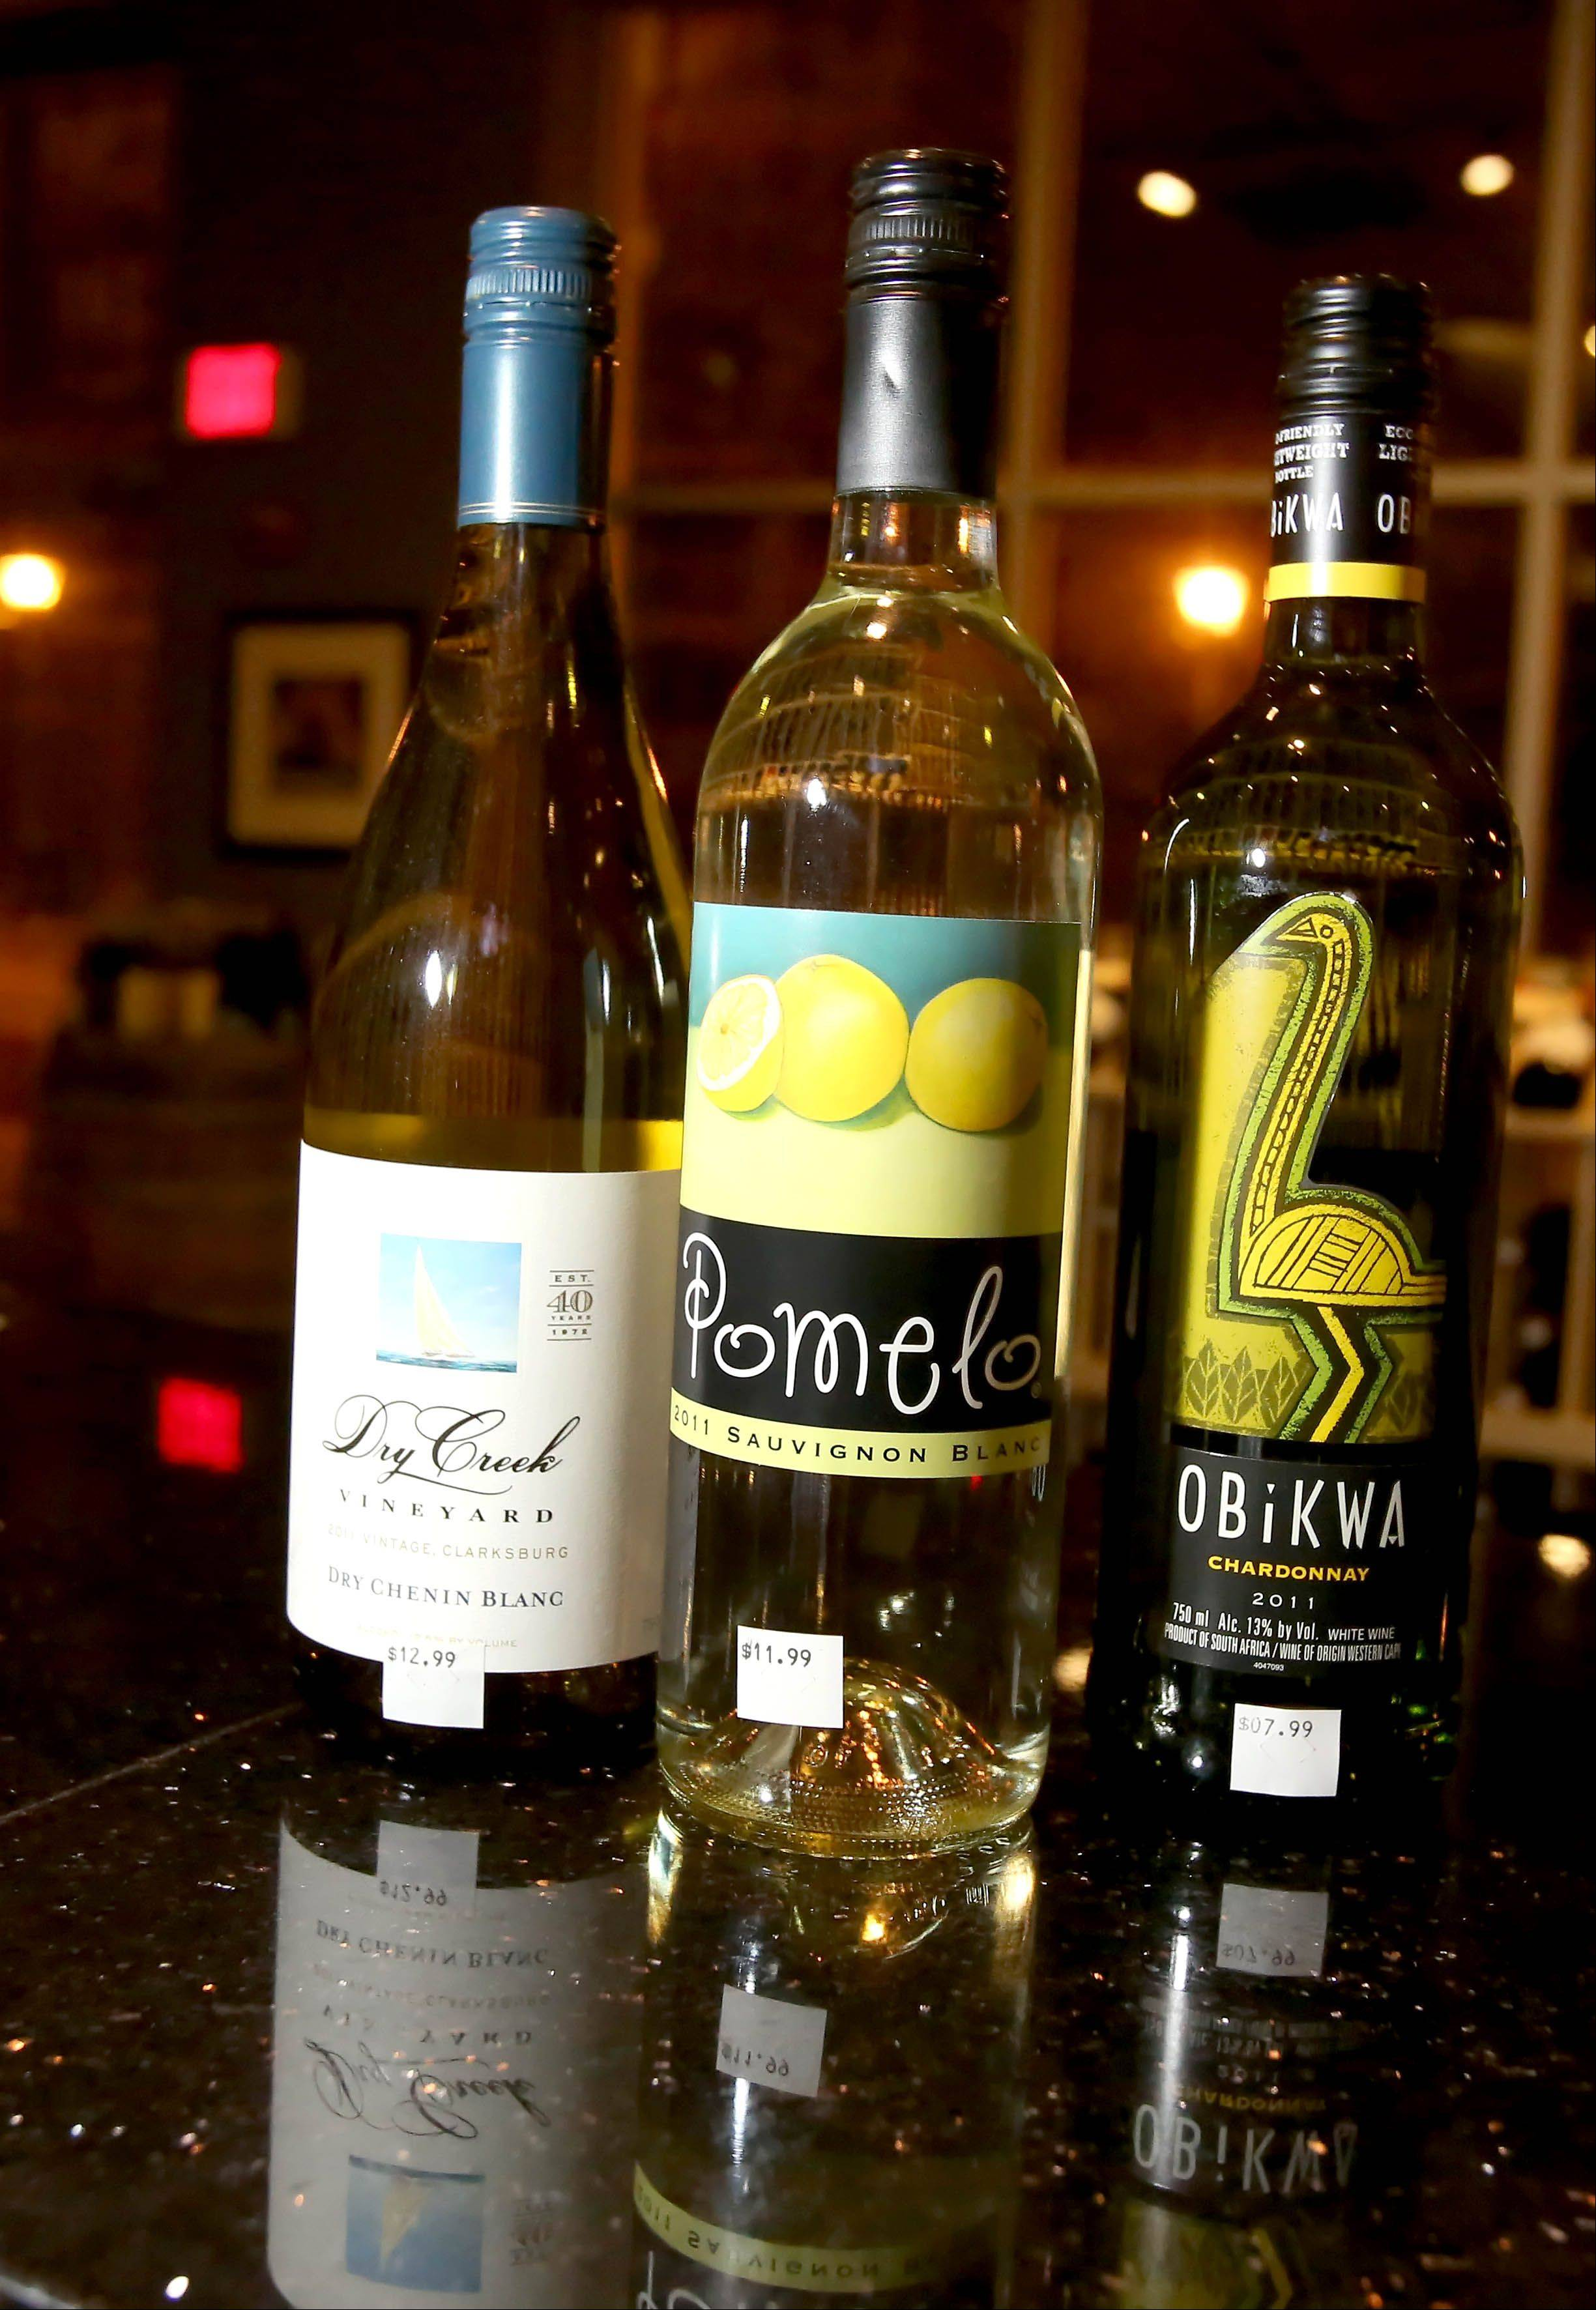 Wine lovers as well as novices will find a nice selection at The Vino Cellar wine bar in Lombard.